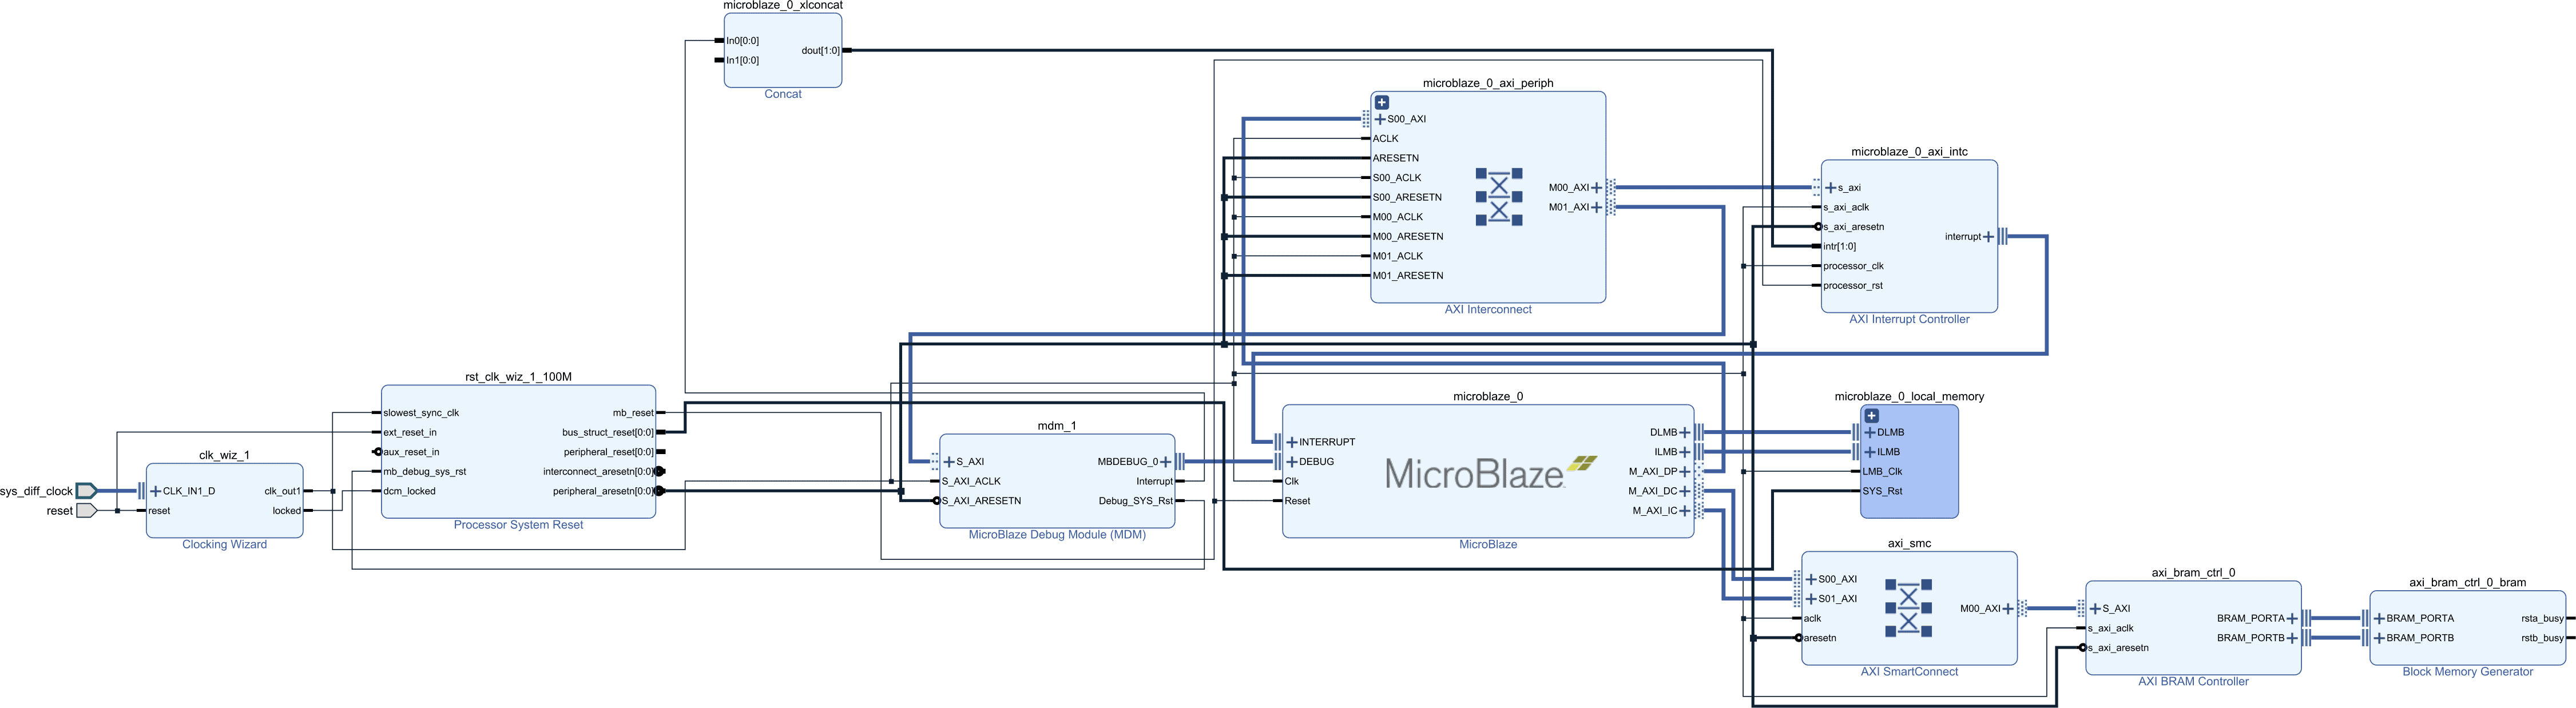 MicroBlaze Configuration for an RTOS Part 1 – Memory Hierarchy | JBLopen